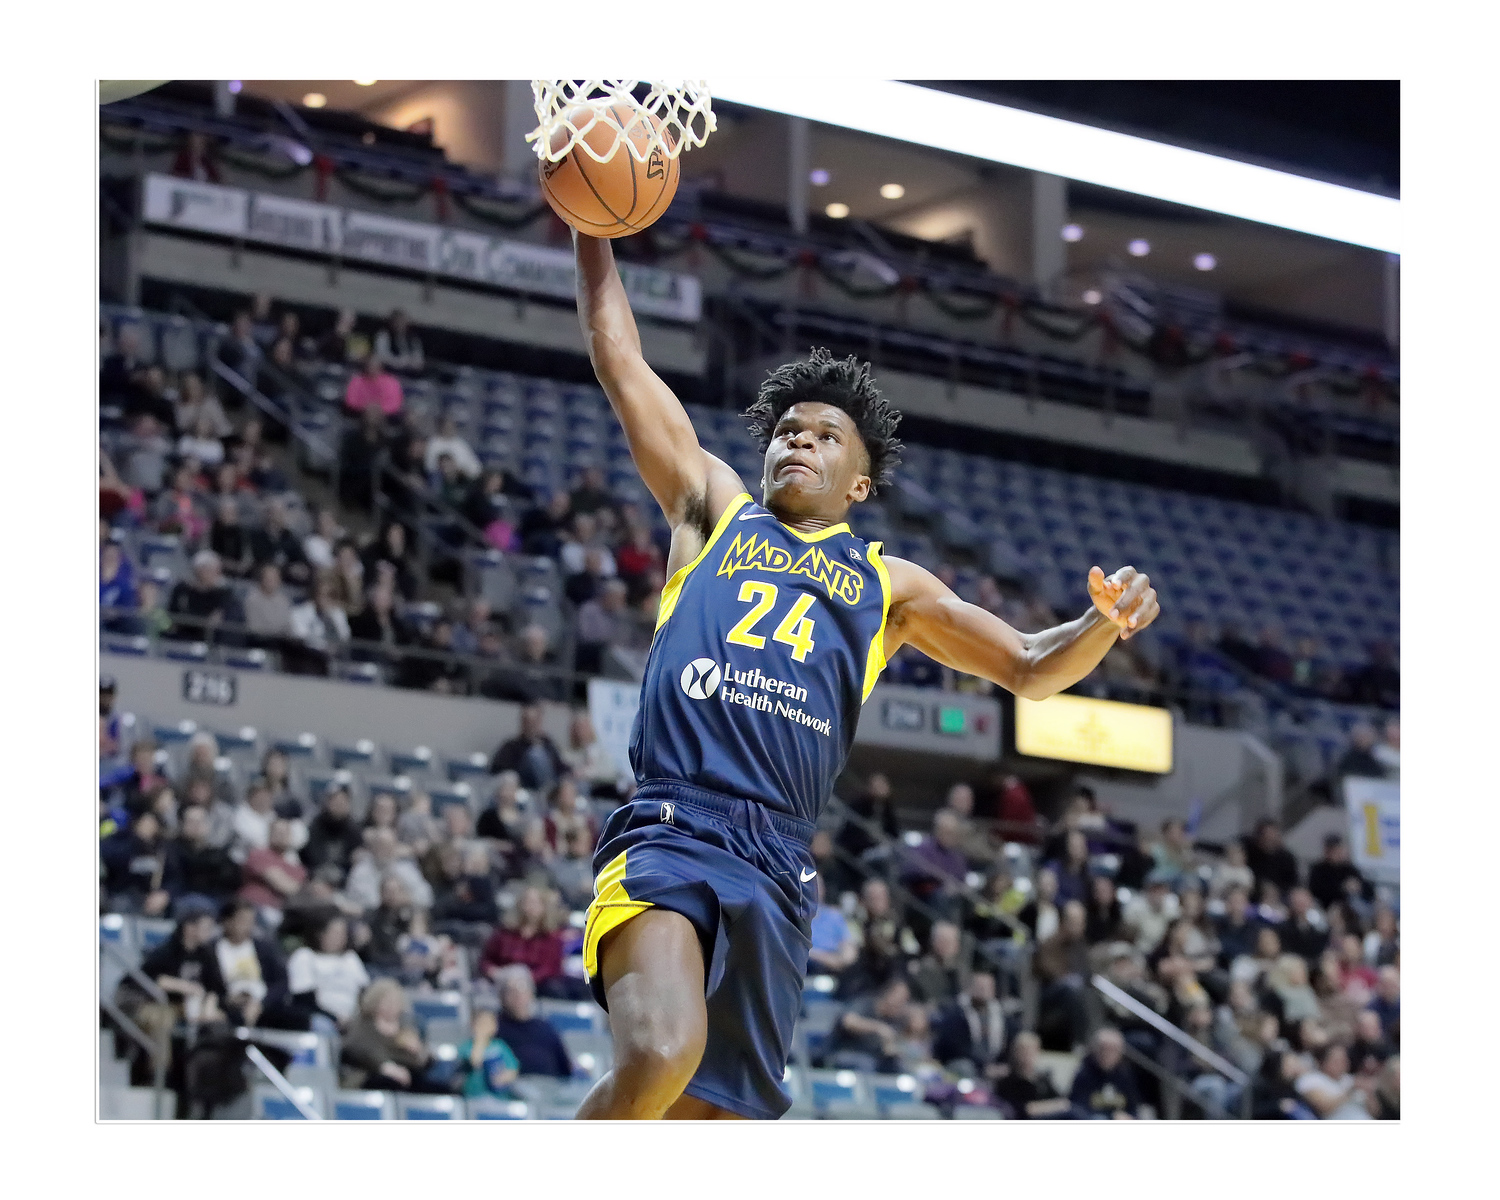 IMAGE: https://photos.smugmug.com/Sports-Events/Mad-Ants-Current-Season/Dec-17-2018/i-sB4xrsz/0/8ece043a/X3/FX8A5509a-X3.jpg